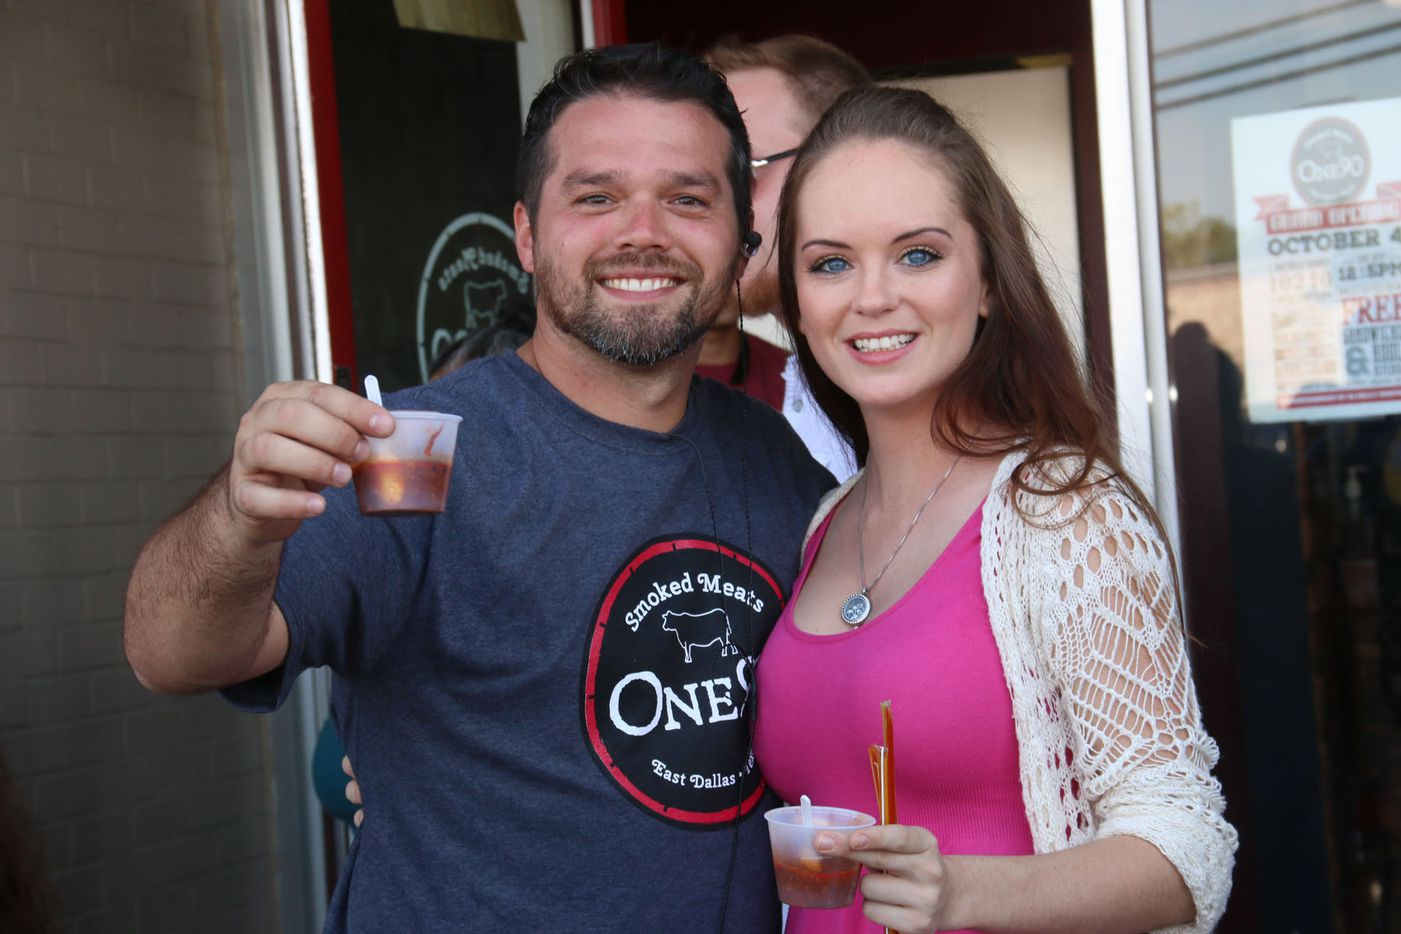 One90 Smoked Meats had its grand opening in East Dallas on October 4, 2015.